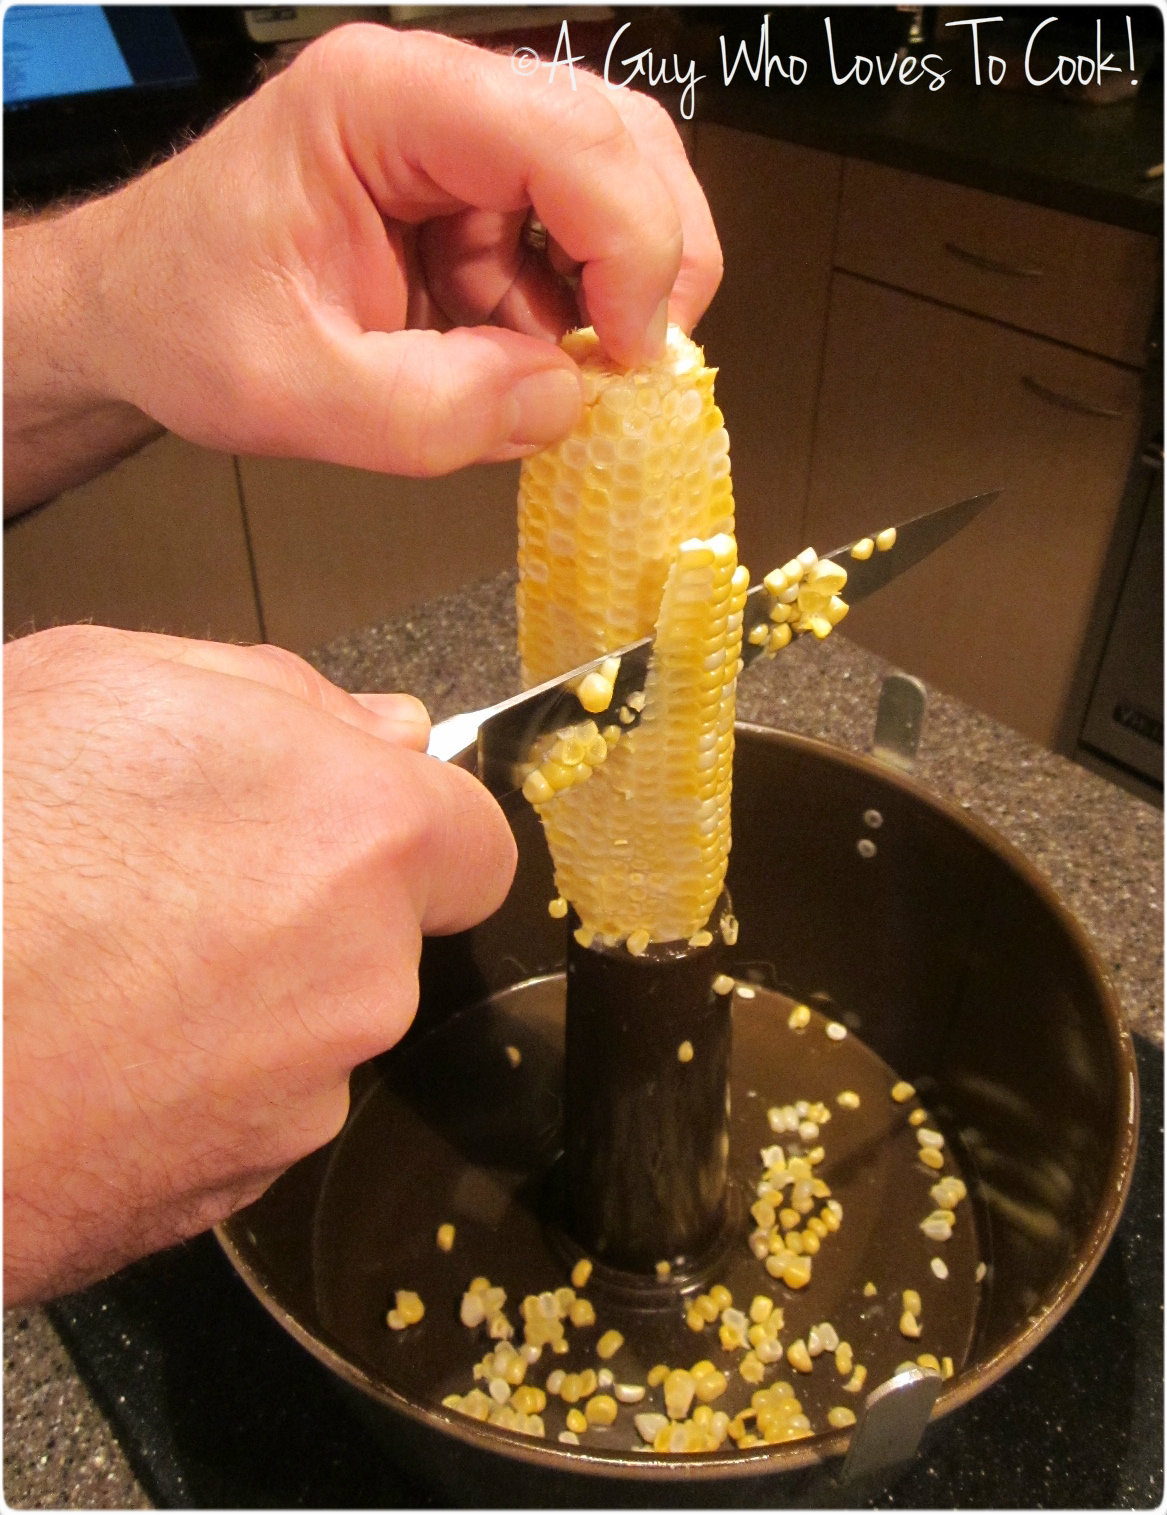 Shucking fresh corn